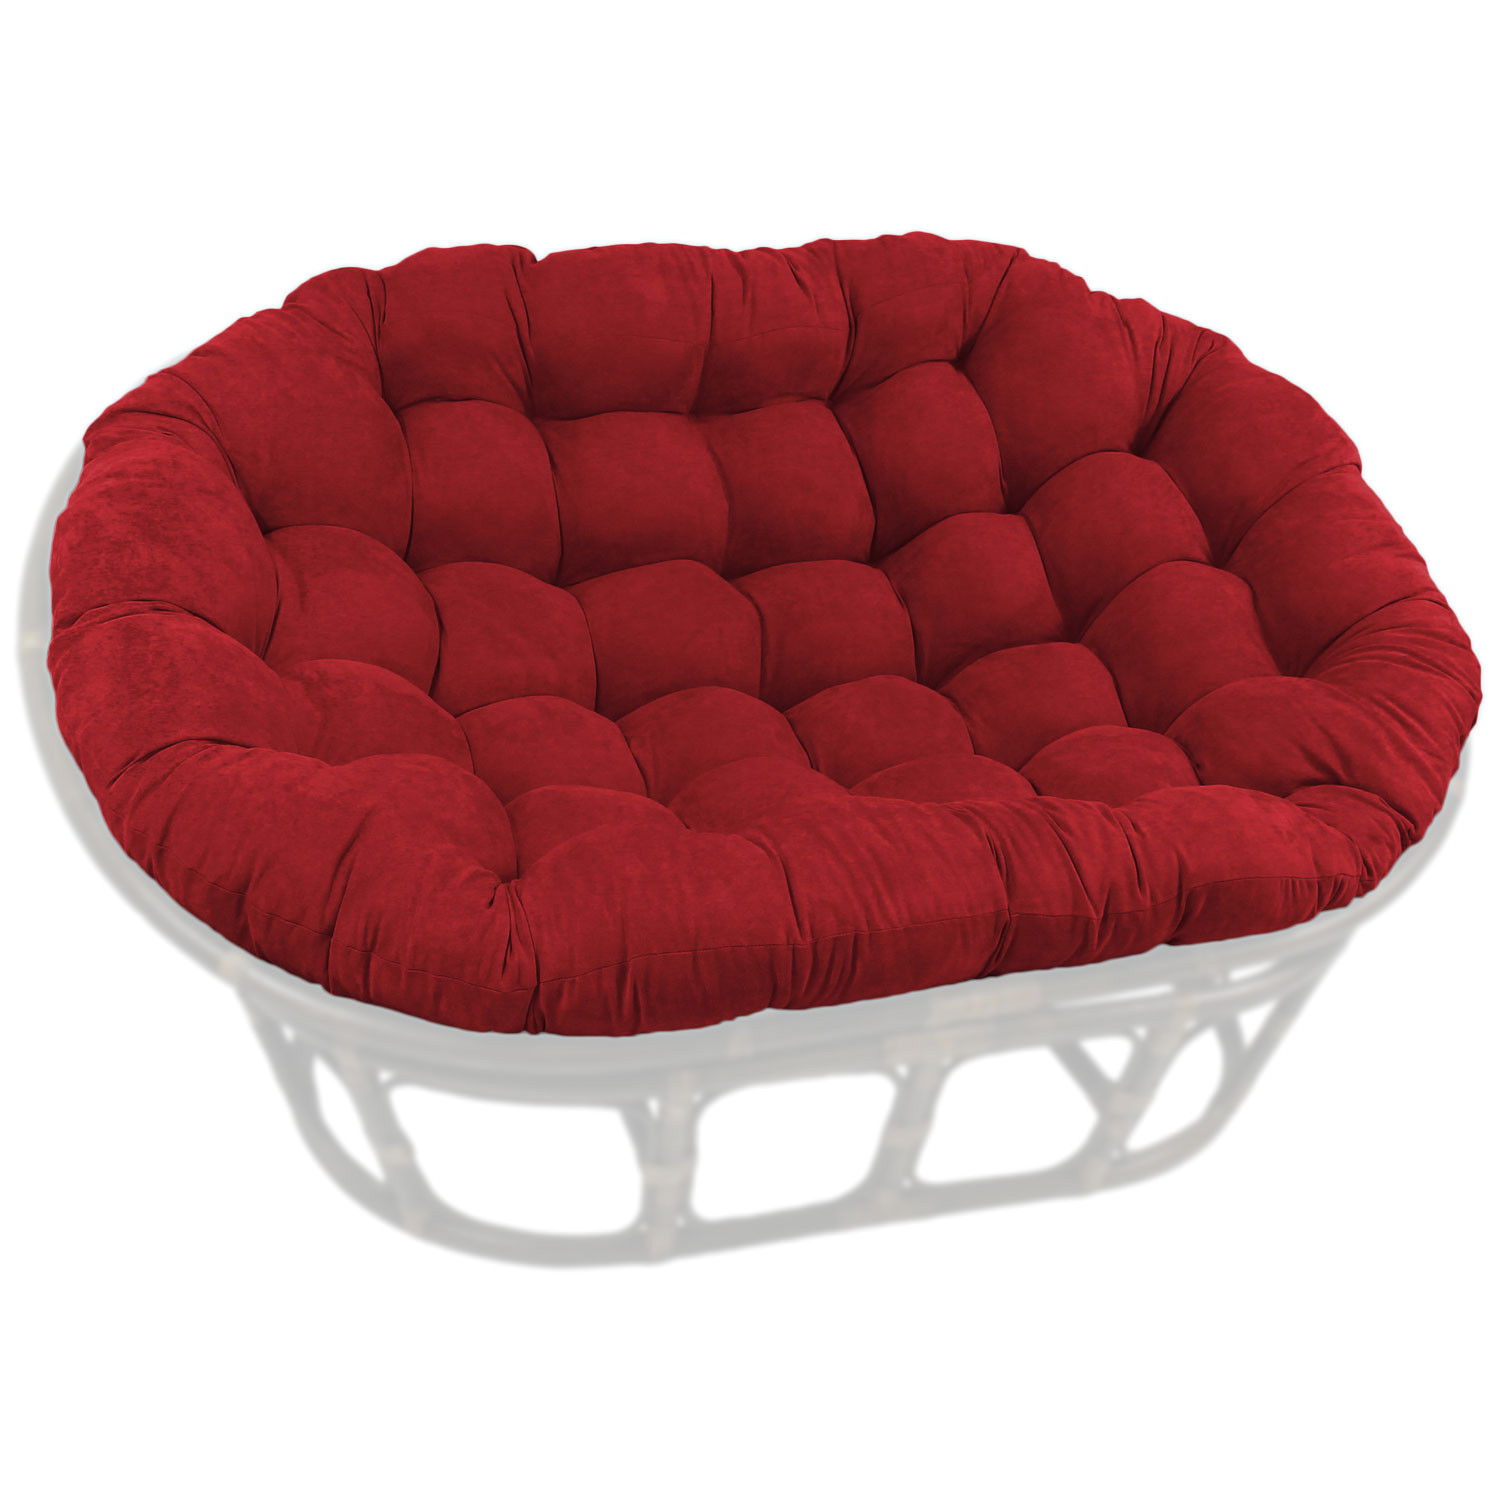 78 x 58 oversized double papasan cushion tufted microsuede chair outdoor d